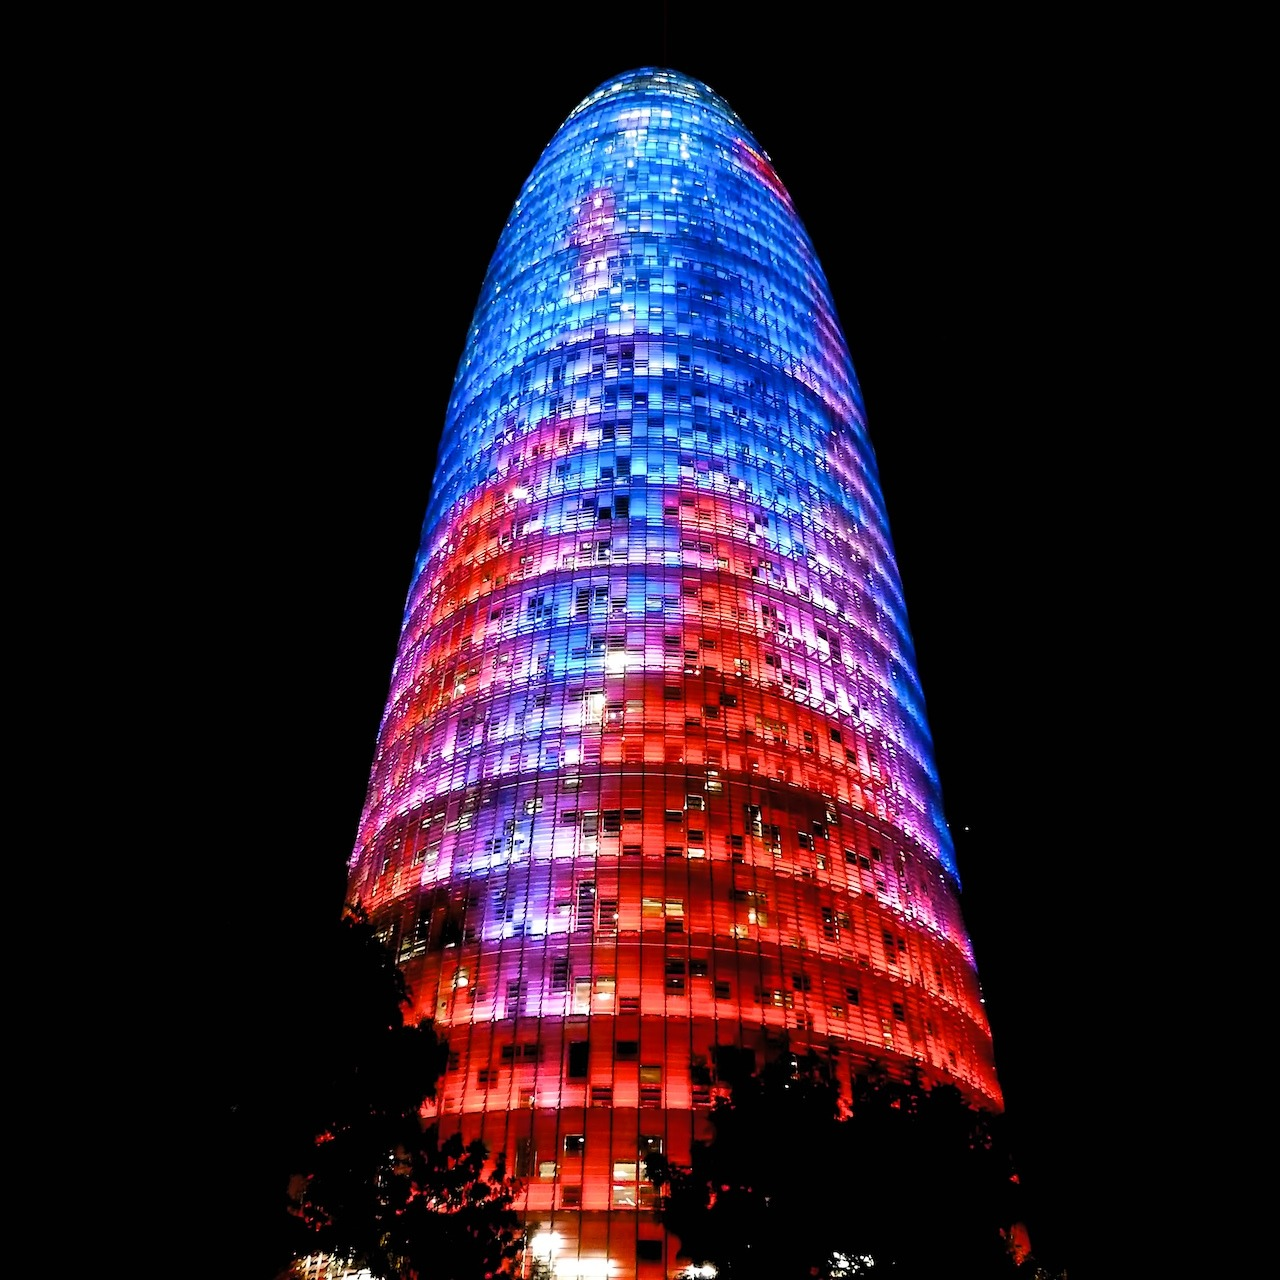 The illuminated Torre Agbar at night; (cc) by-nc squics.com